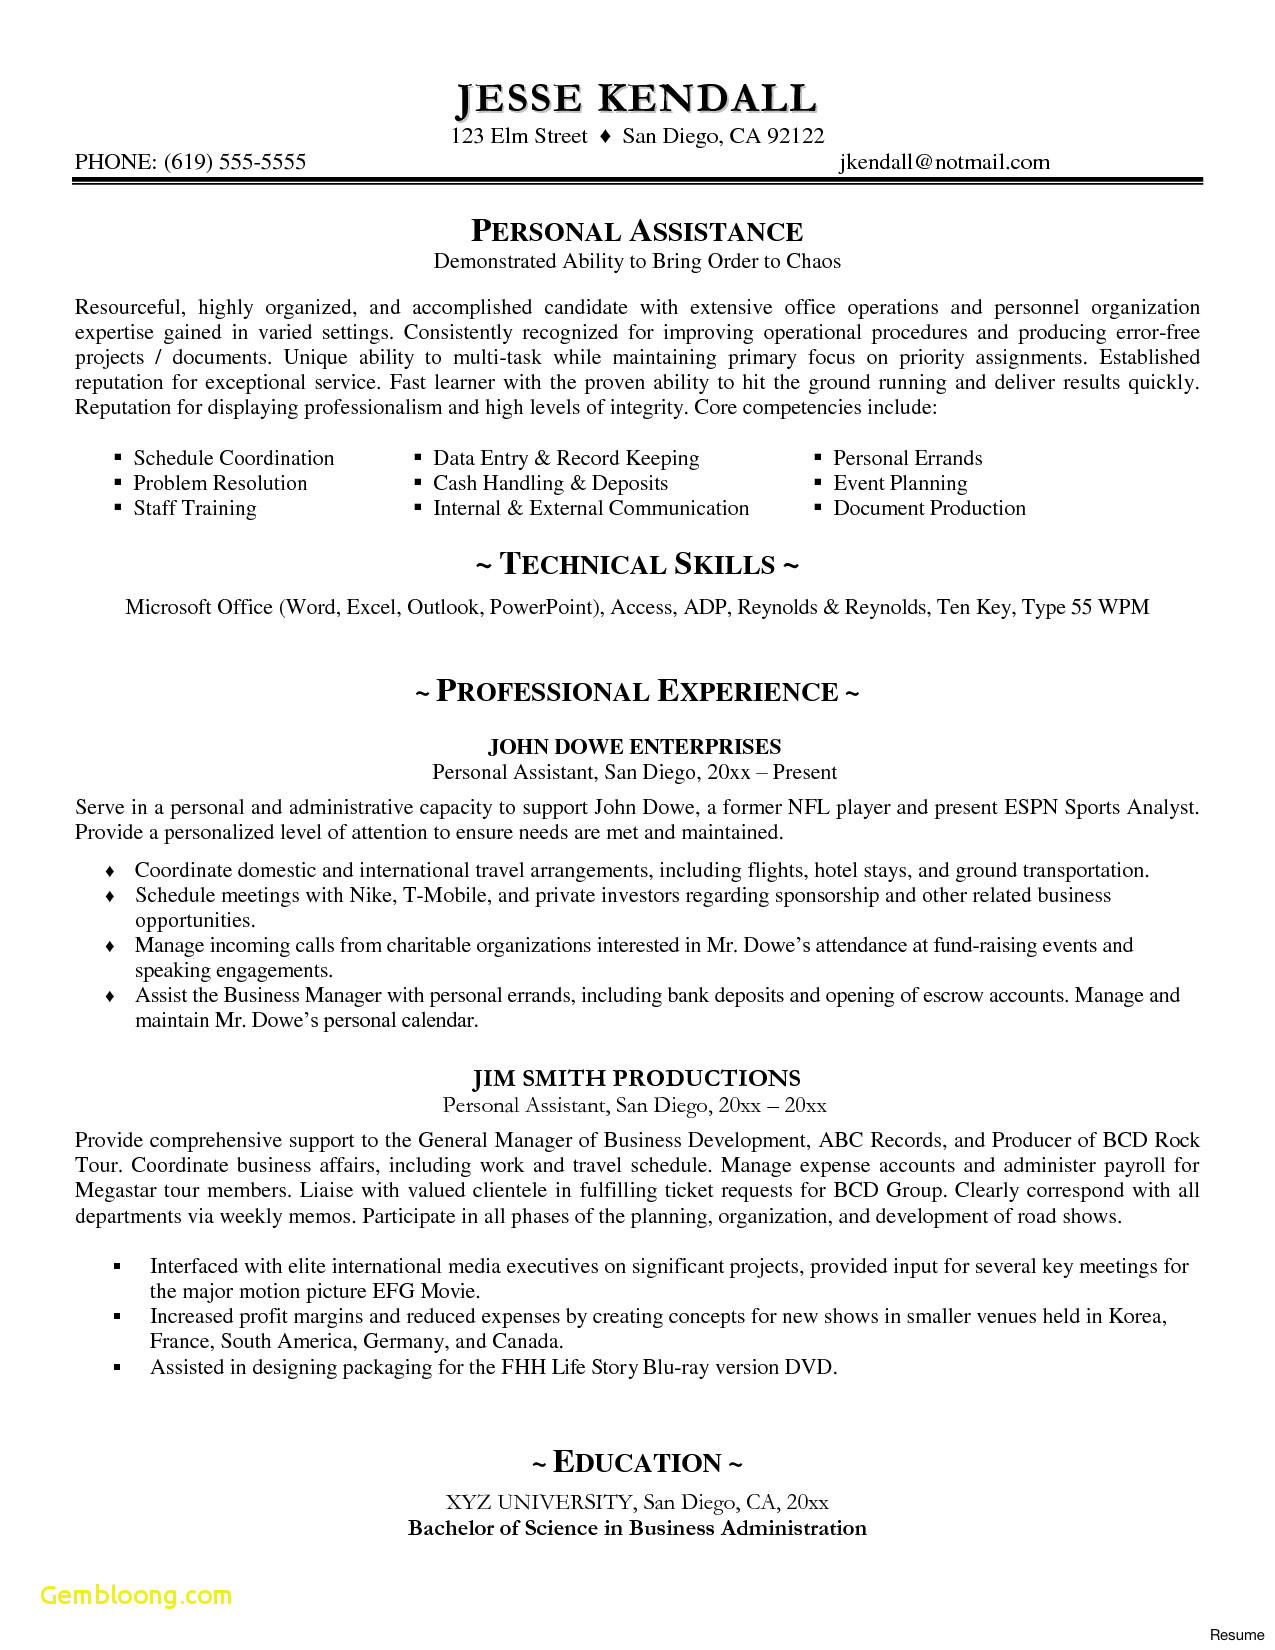 Motivation Letter Template Doc - Resume Samples Doc New Executive Resume Templates Word Od Specialist